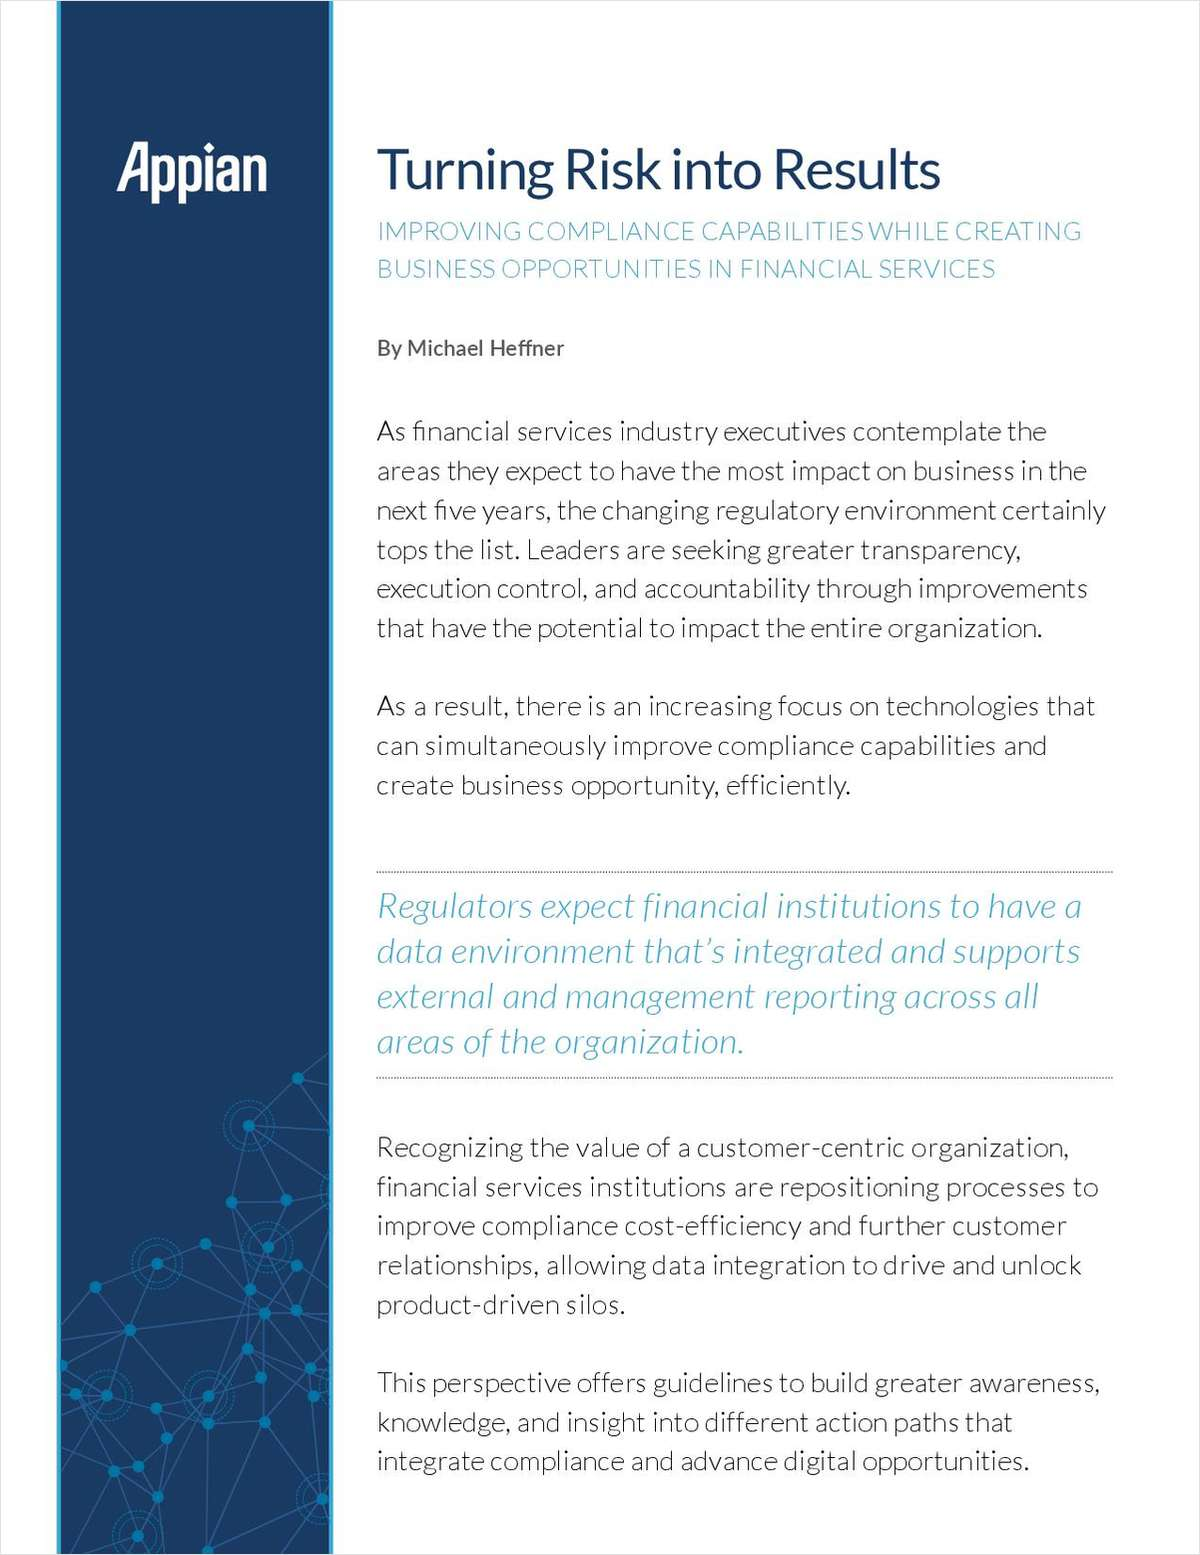 Turning Risk into Results: Improving Compliance Capabilities in Financial Services